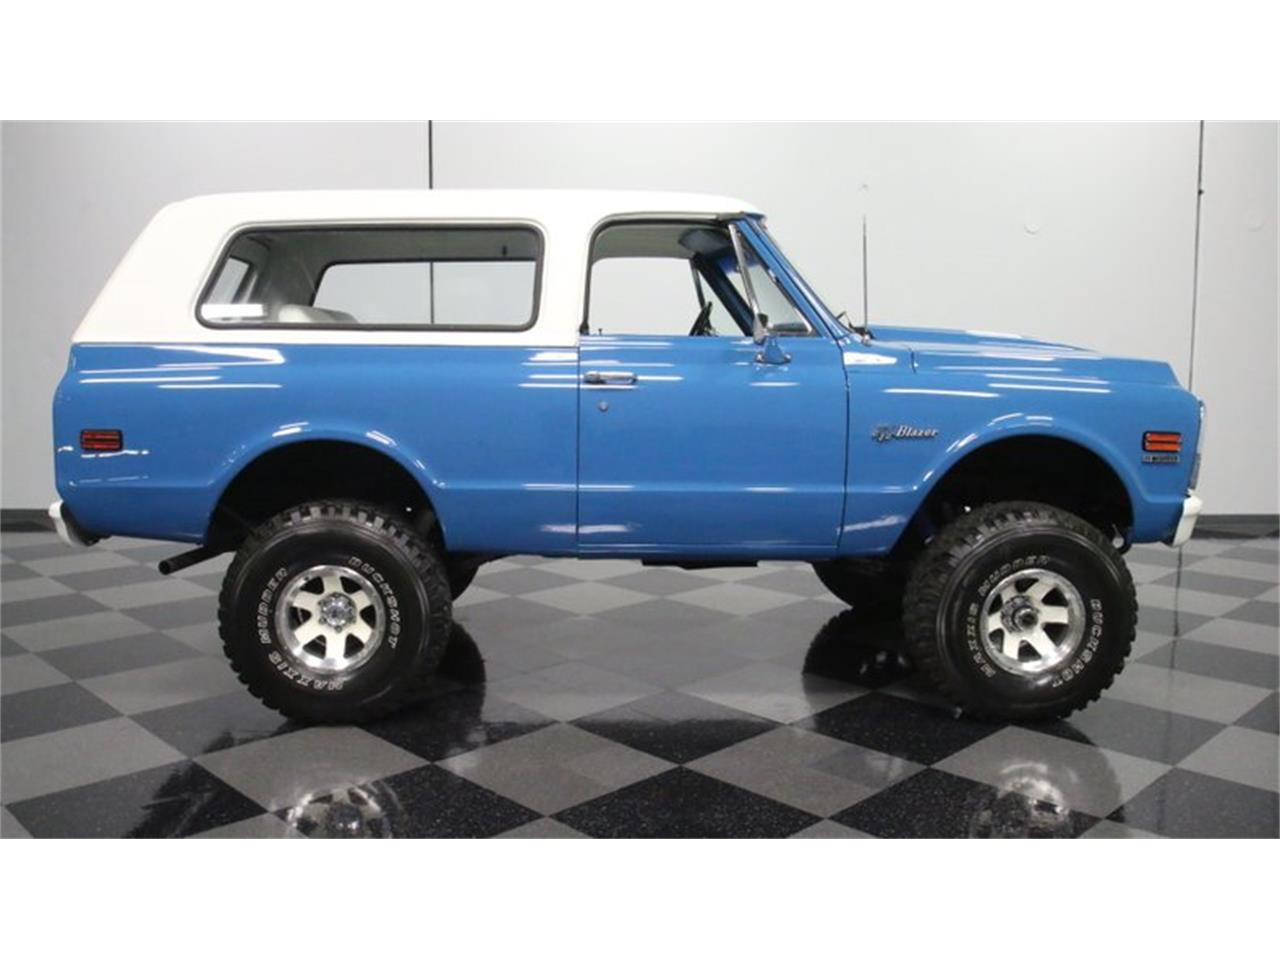 Large Picture of '71 Chevrolet Blazer located in Lithia Springs Georgia - $52,995.00 - PZLZ